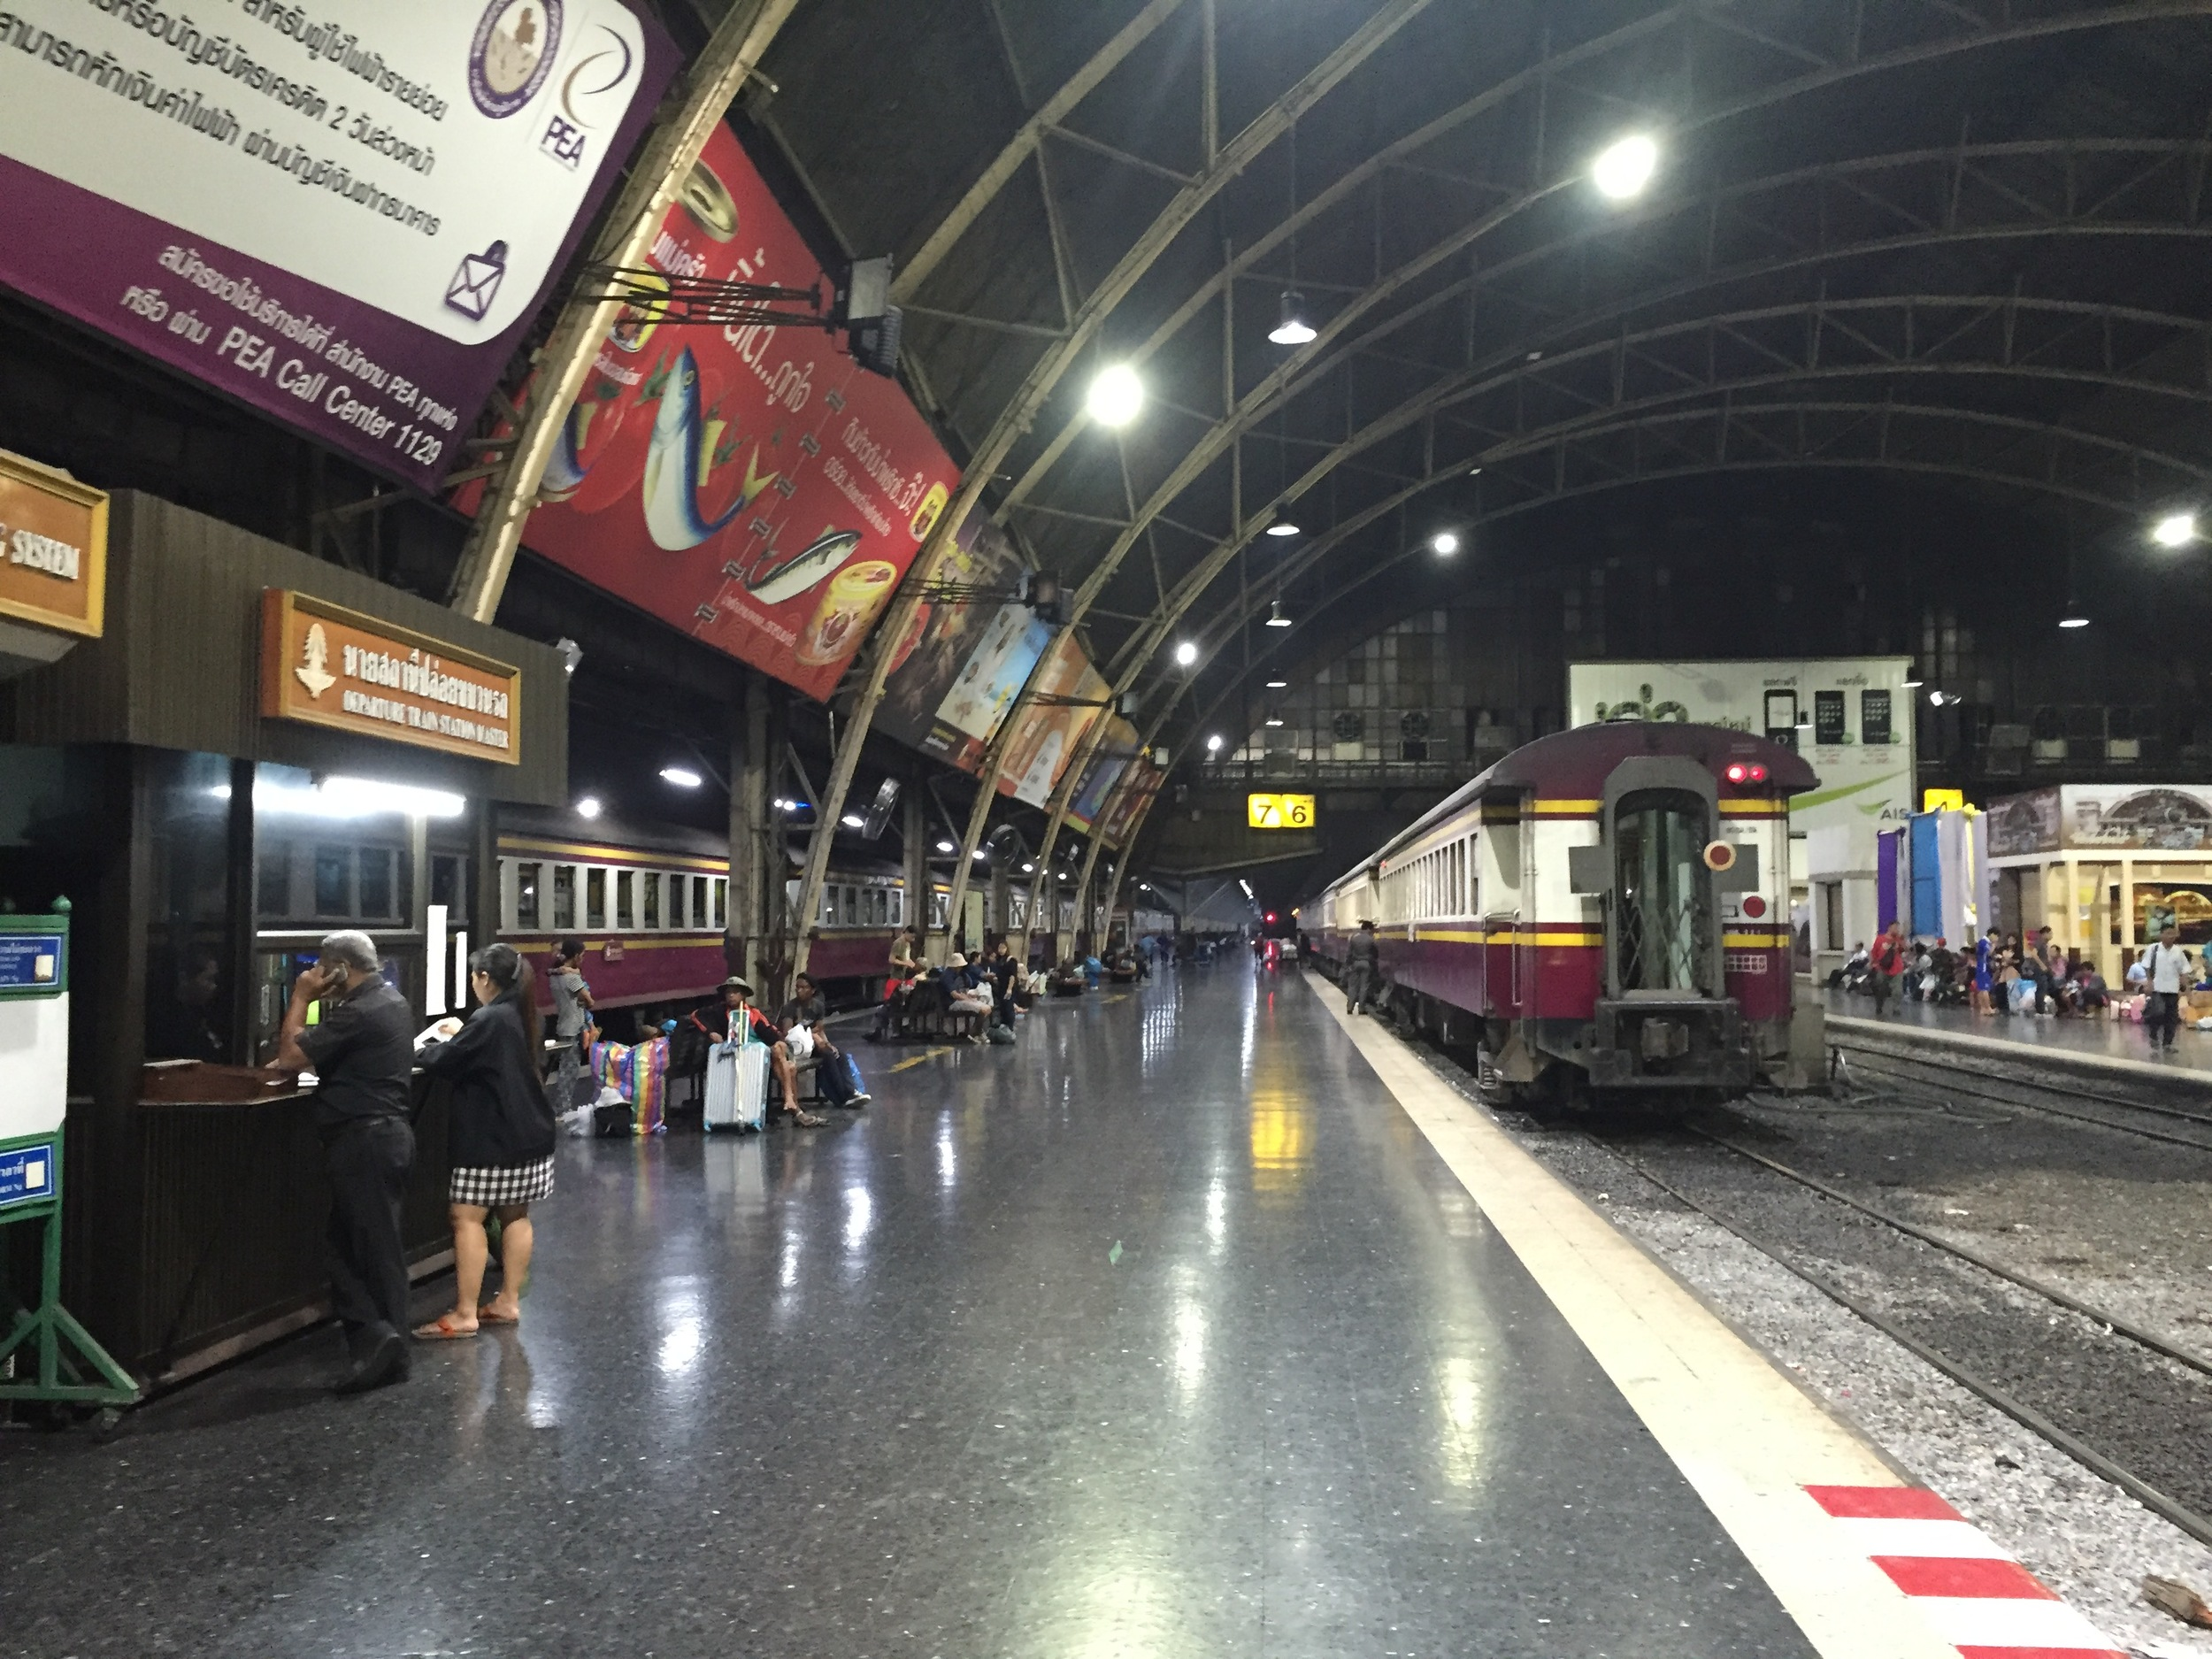 The station behind the ticket counter.